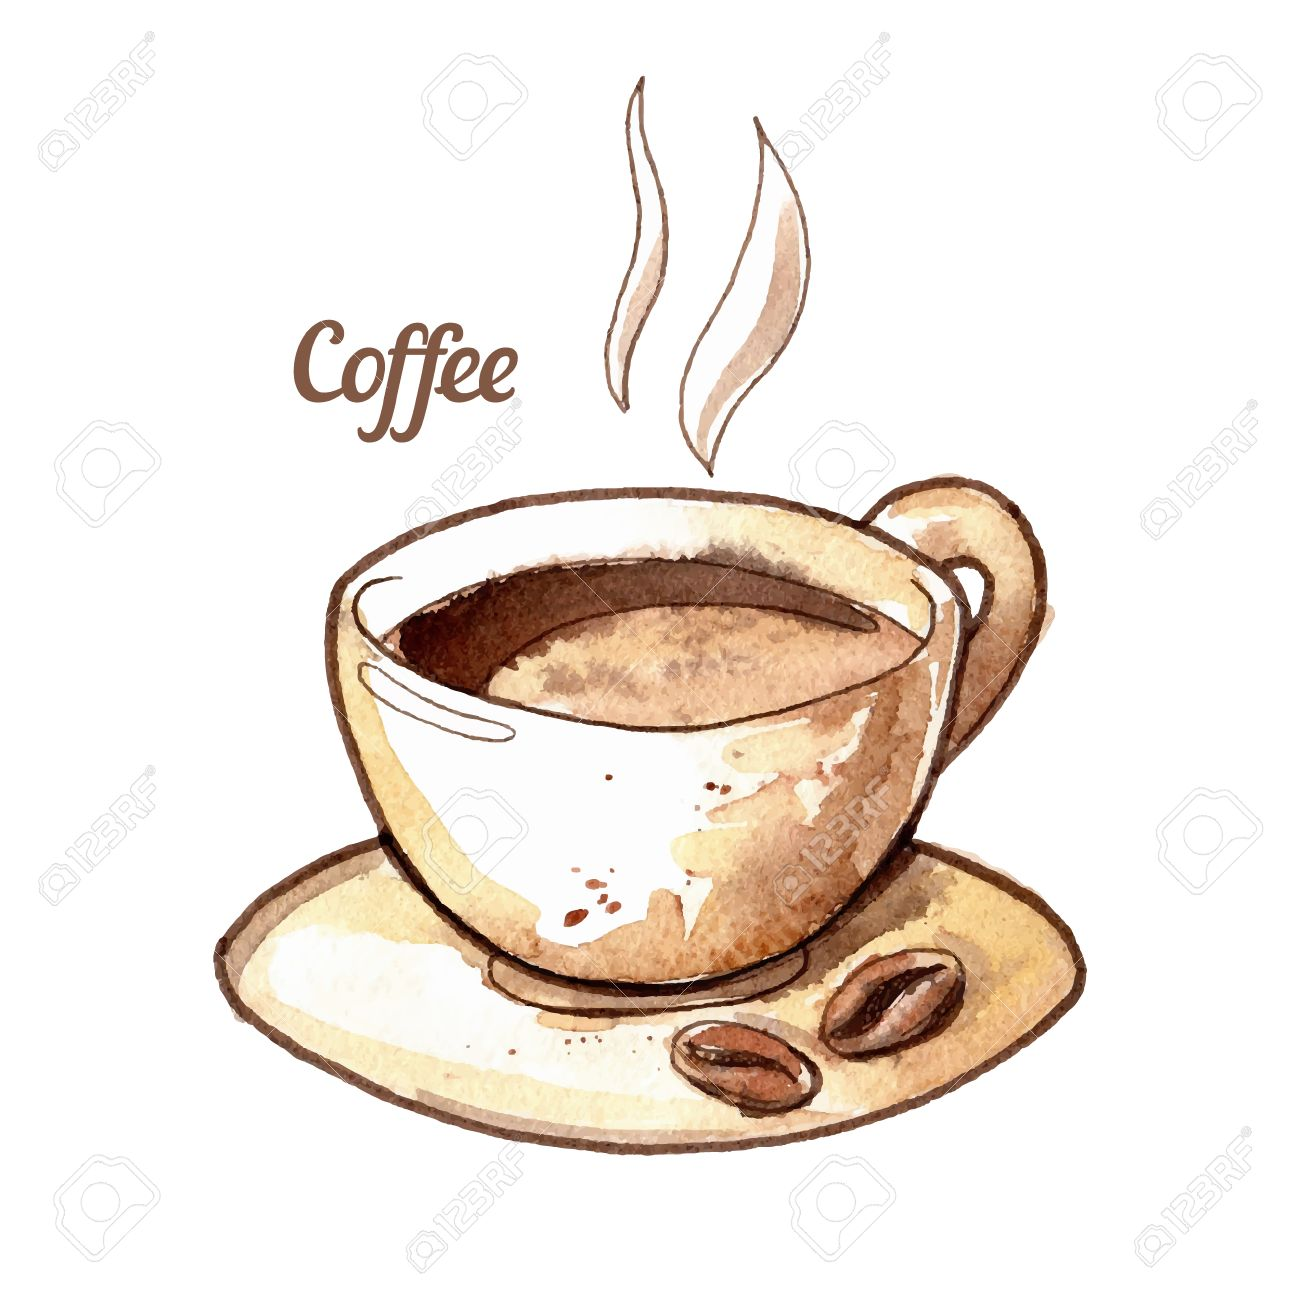 hand drawn watercolor coffee cup illustration royalty free cliparts